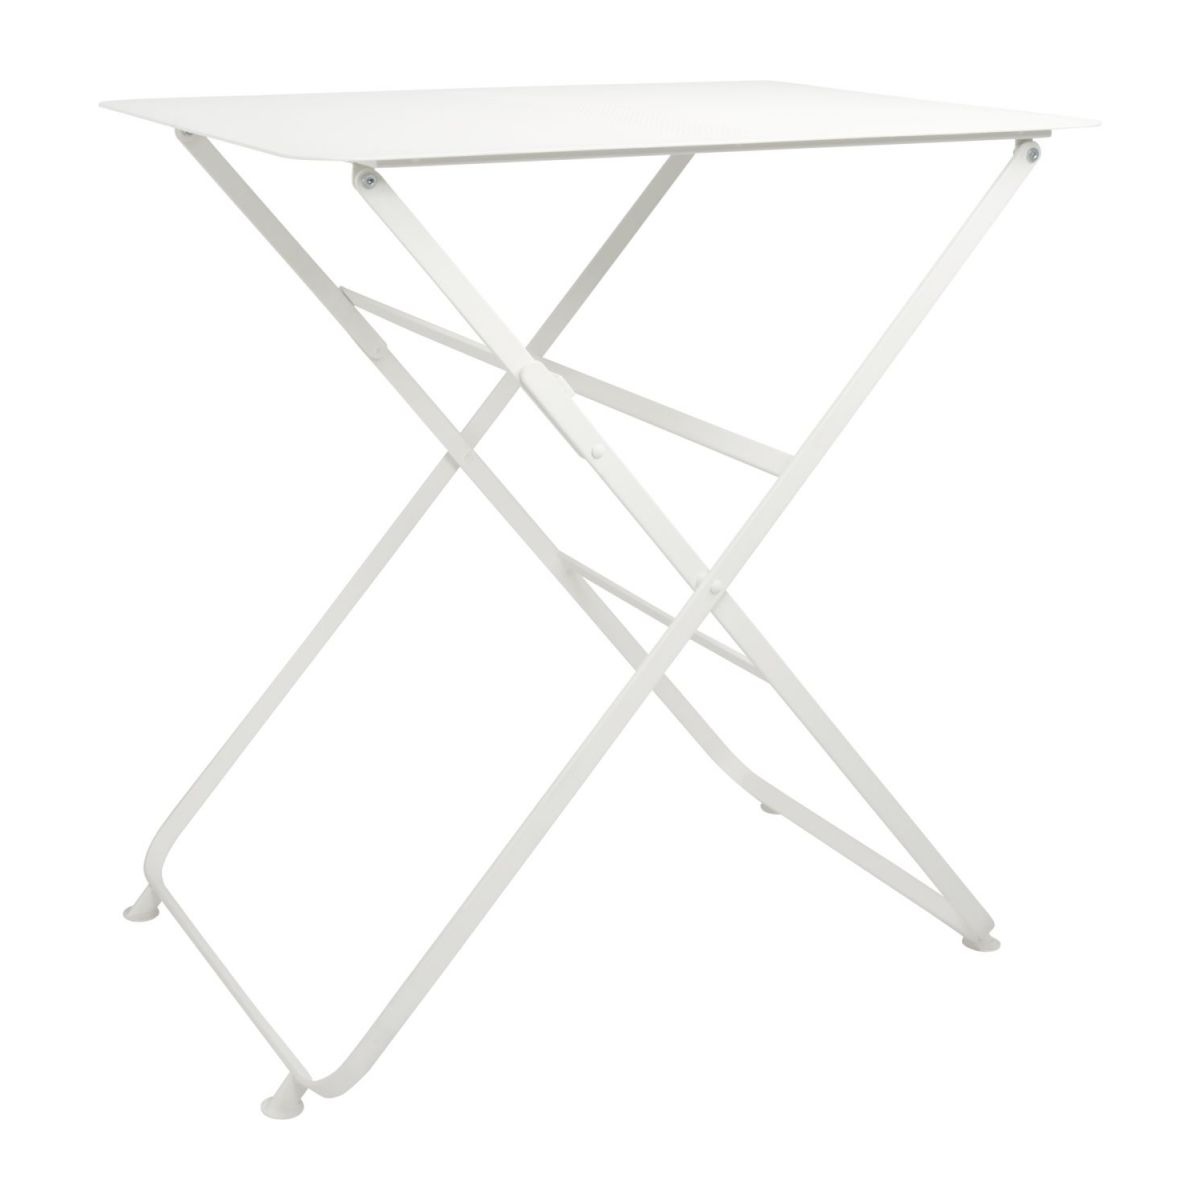 Mesa plegable de metal - Blanco n°1